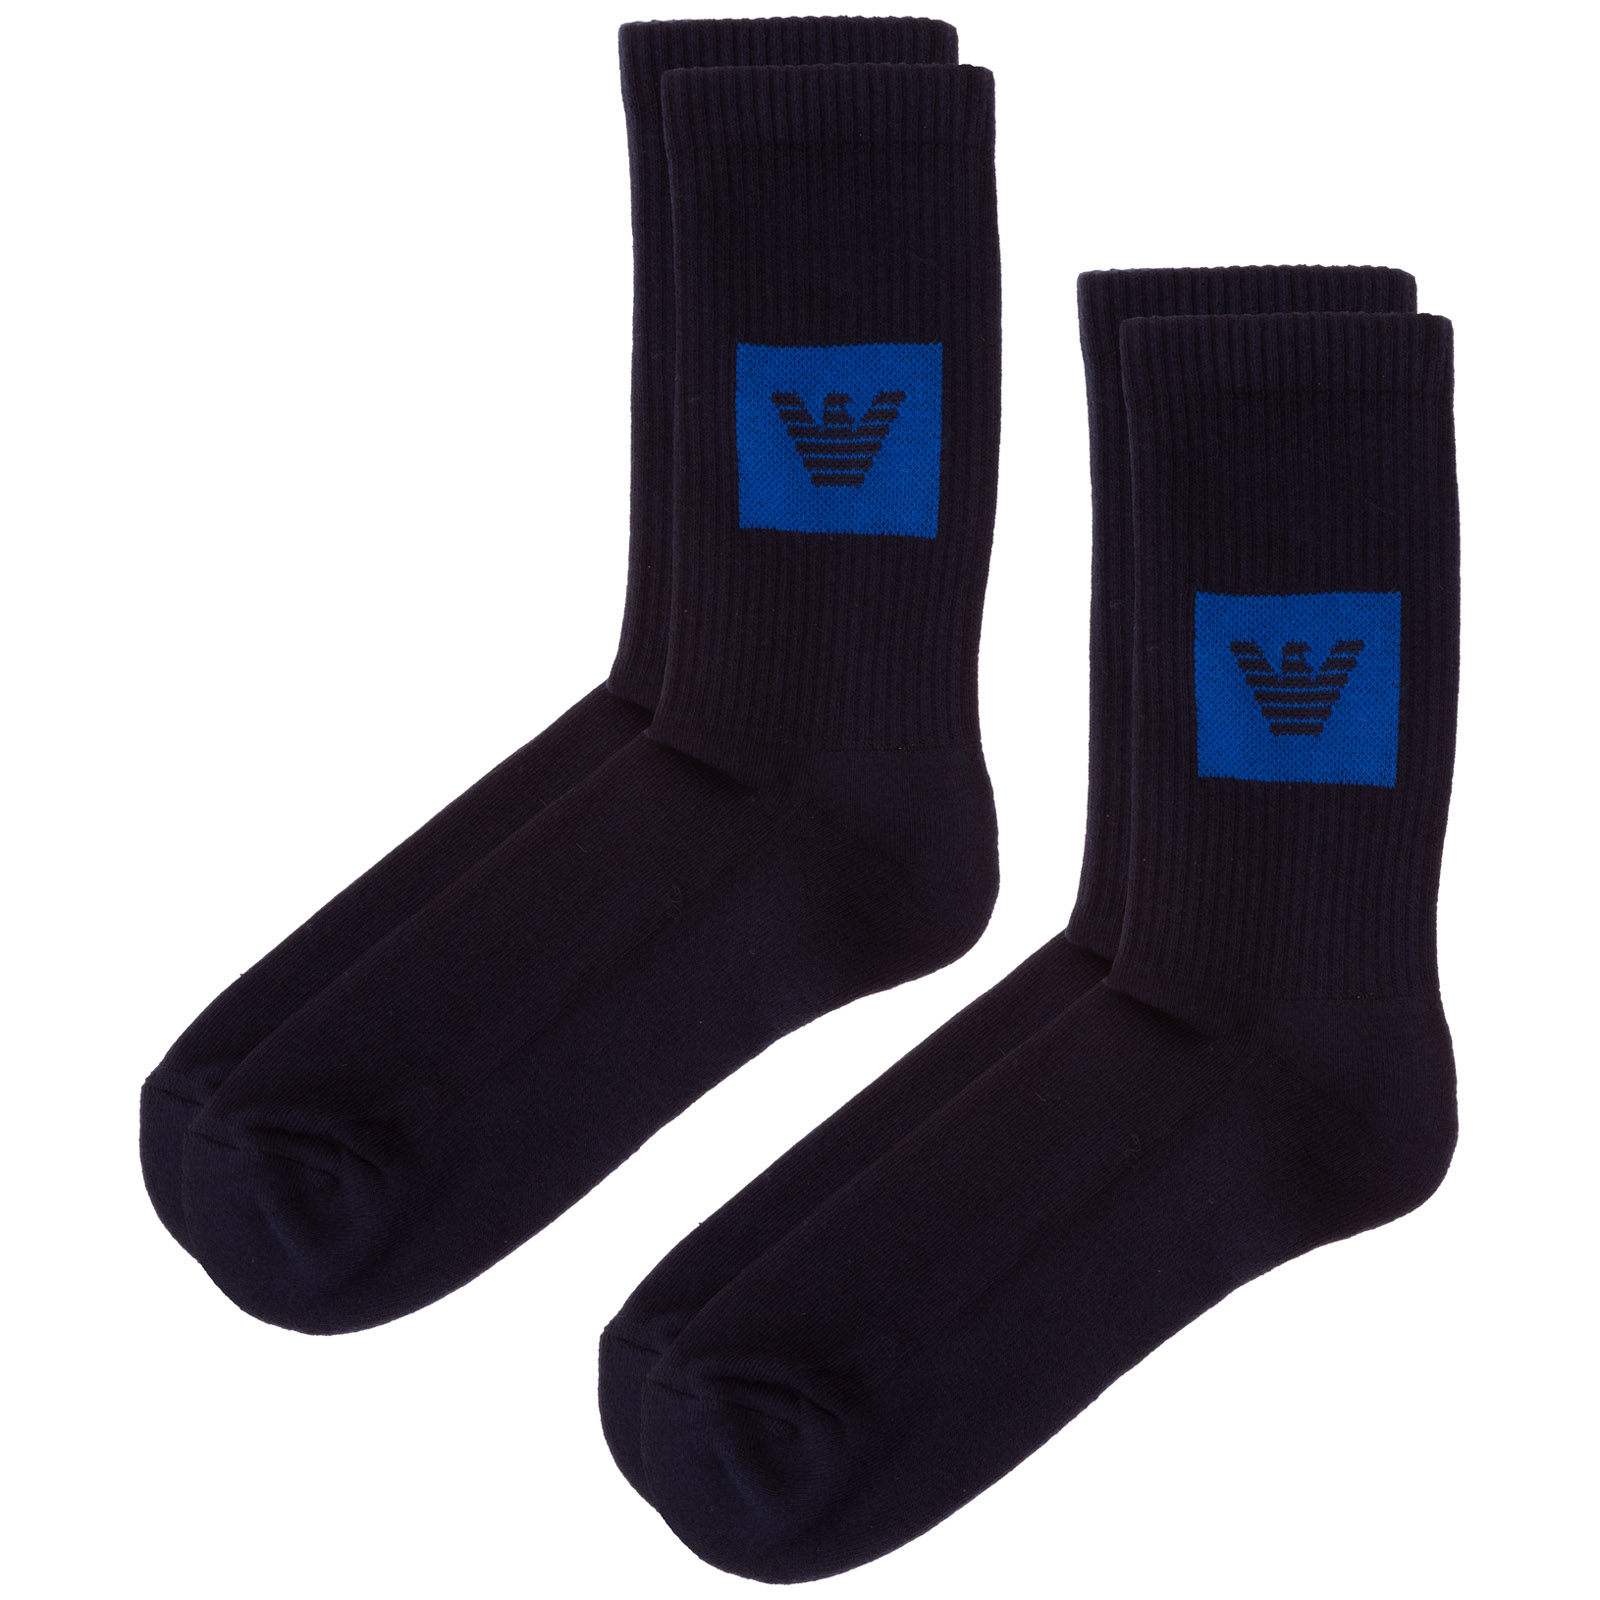 Emporio Armani MEN'S LOW SOCKS BIPACK